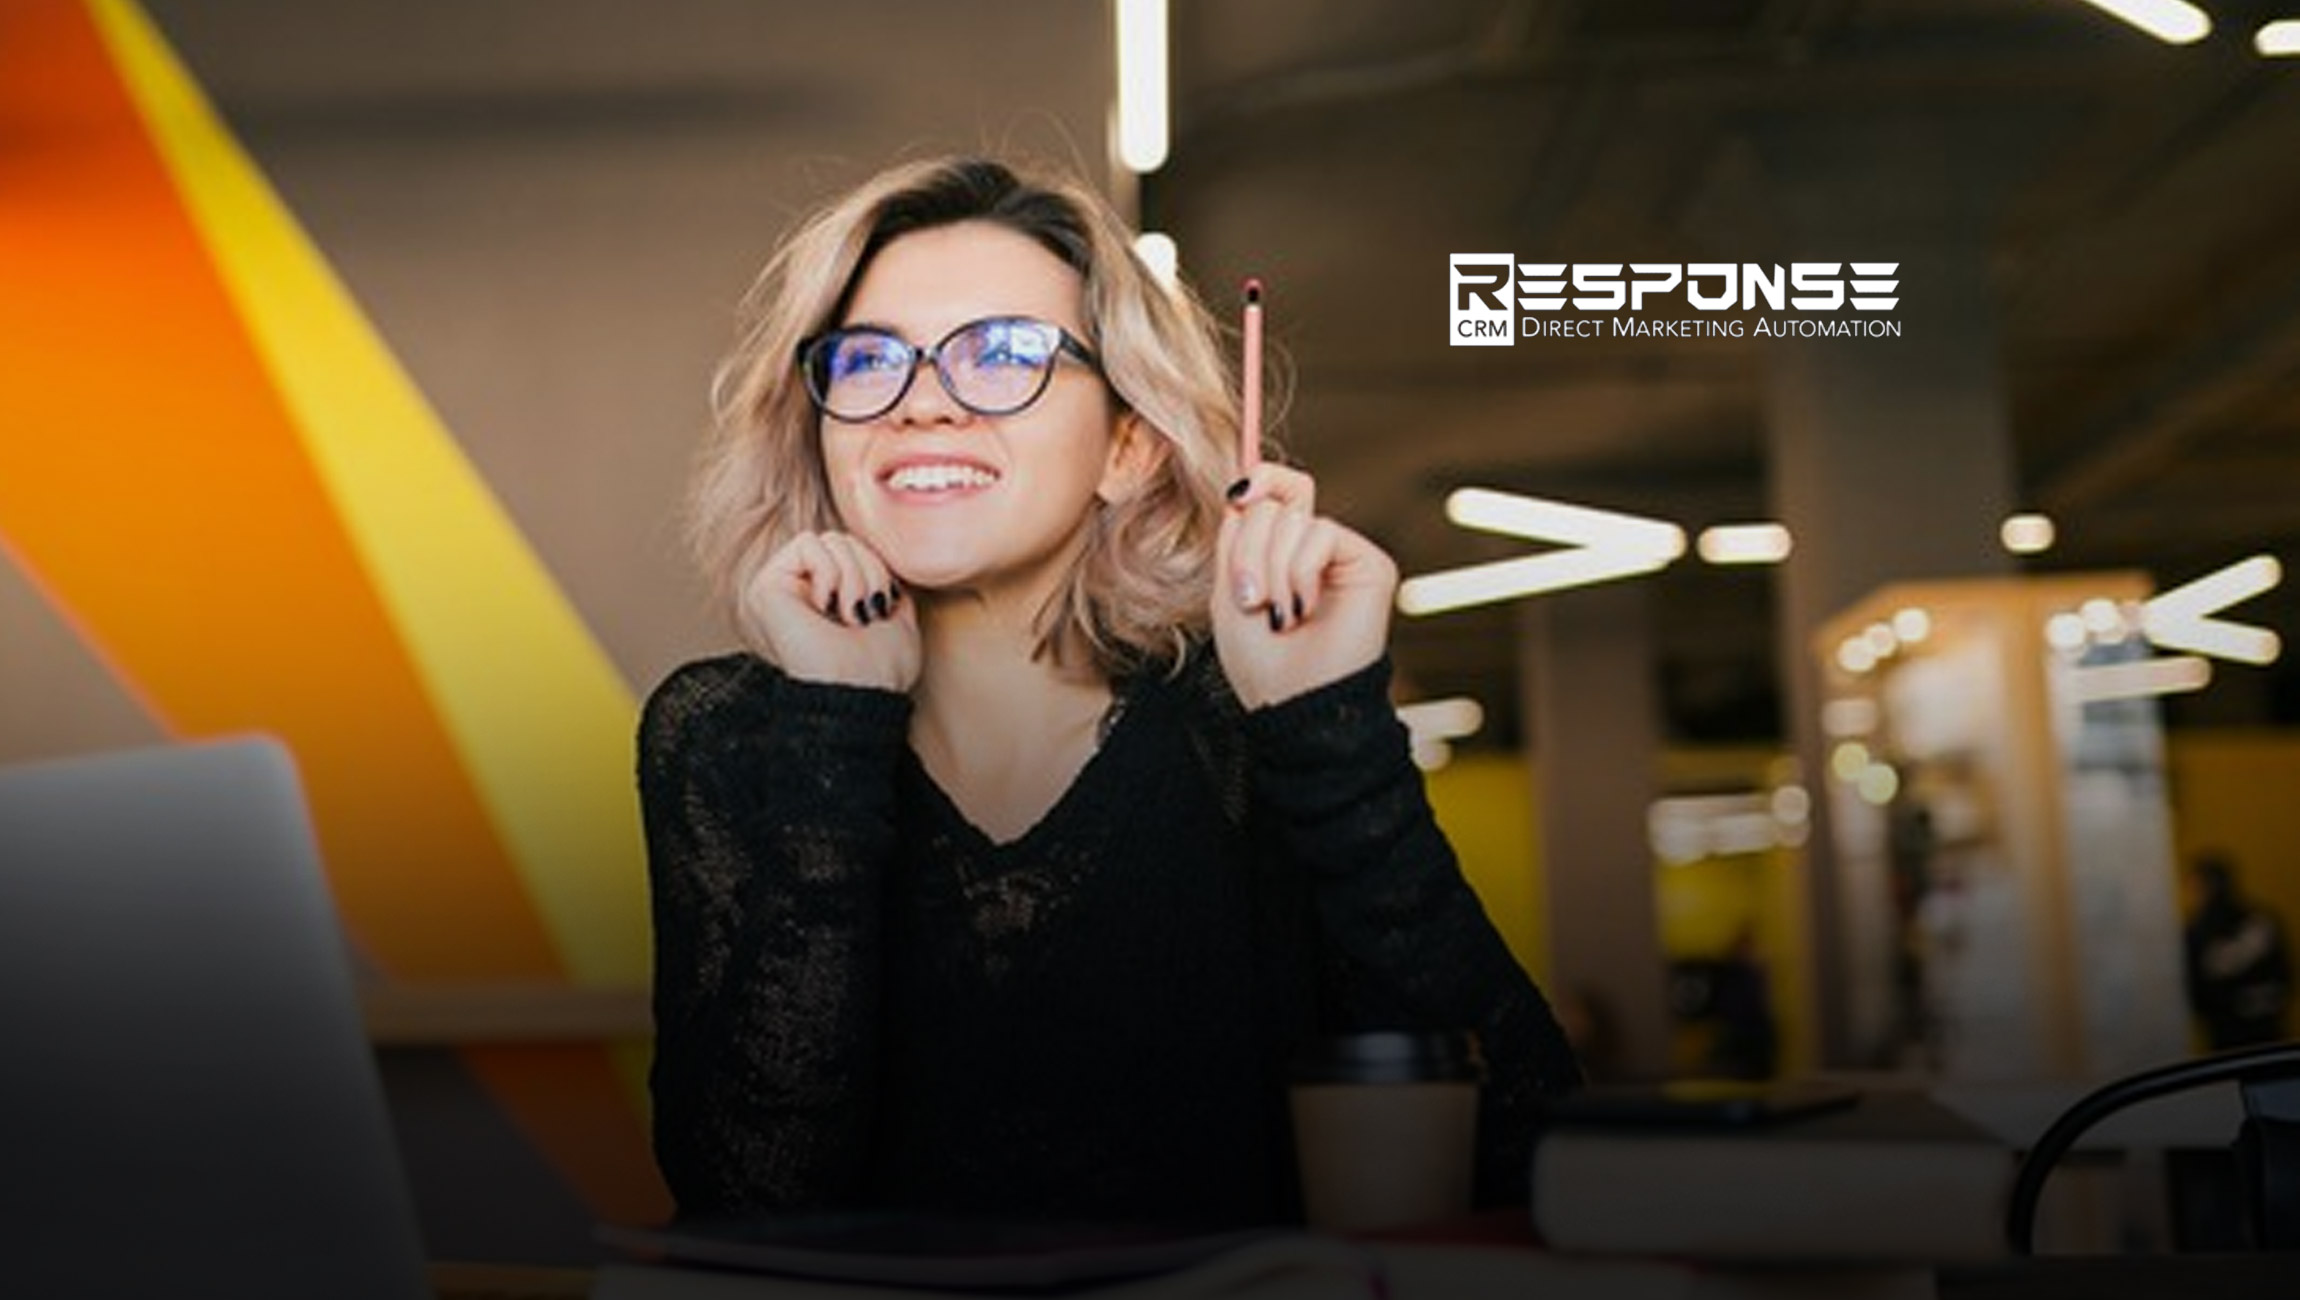 ResponseCRM-Innovations-Enable-Online-Businesses-to-Jump-Start-Sales-in-2021